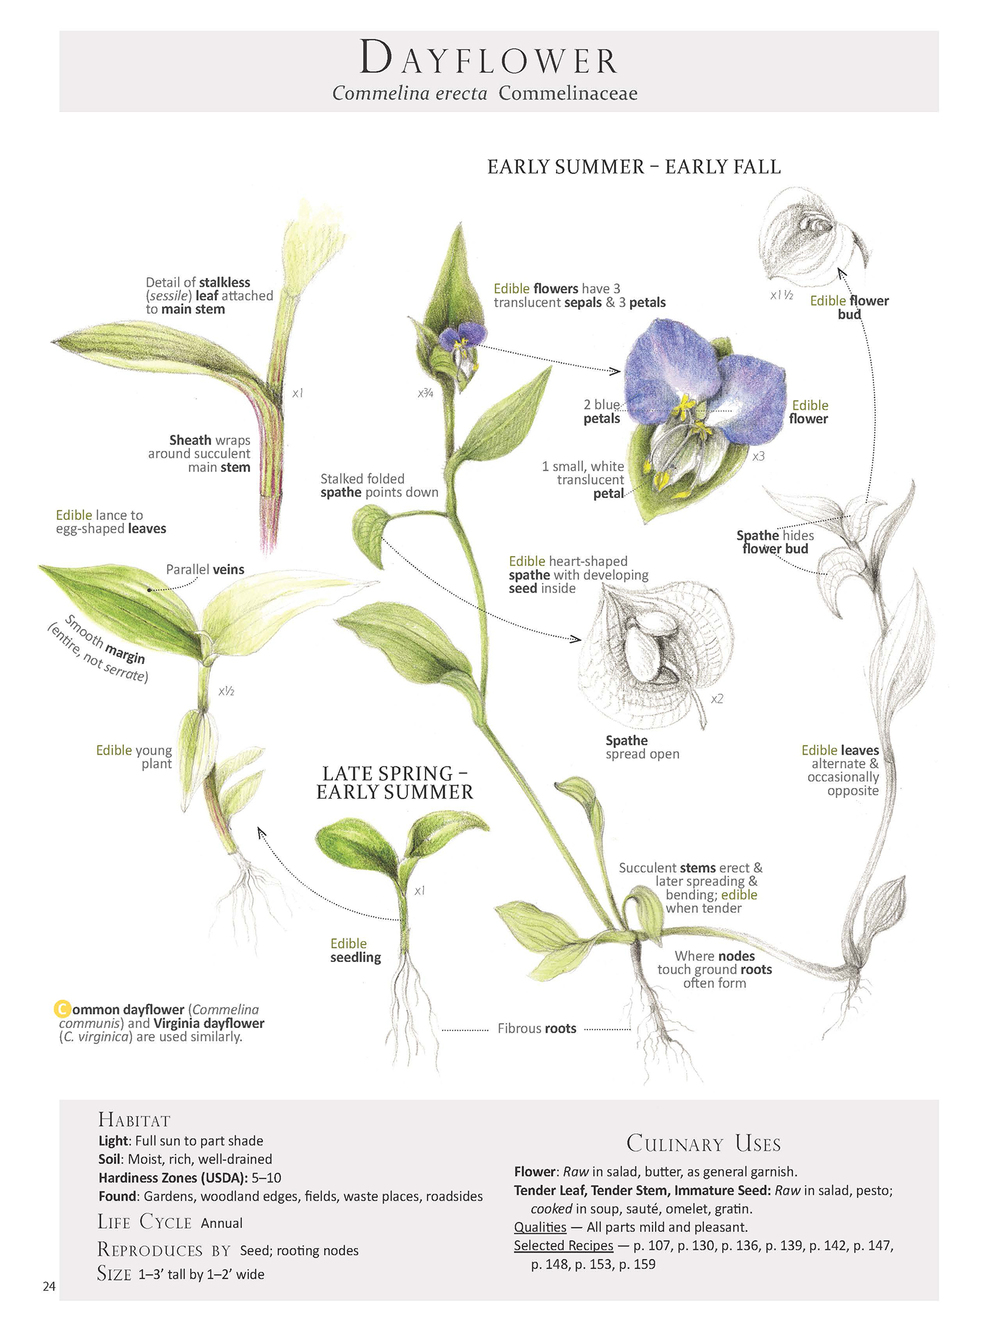 Dayflower - Commelina erecta